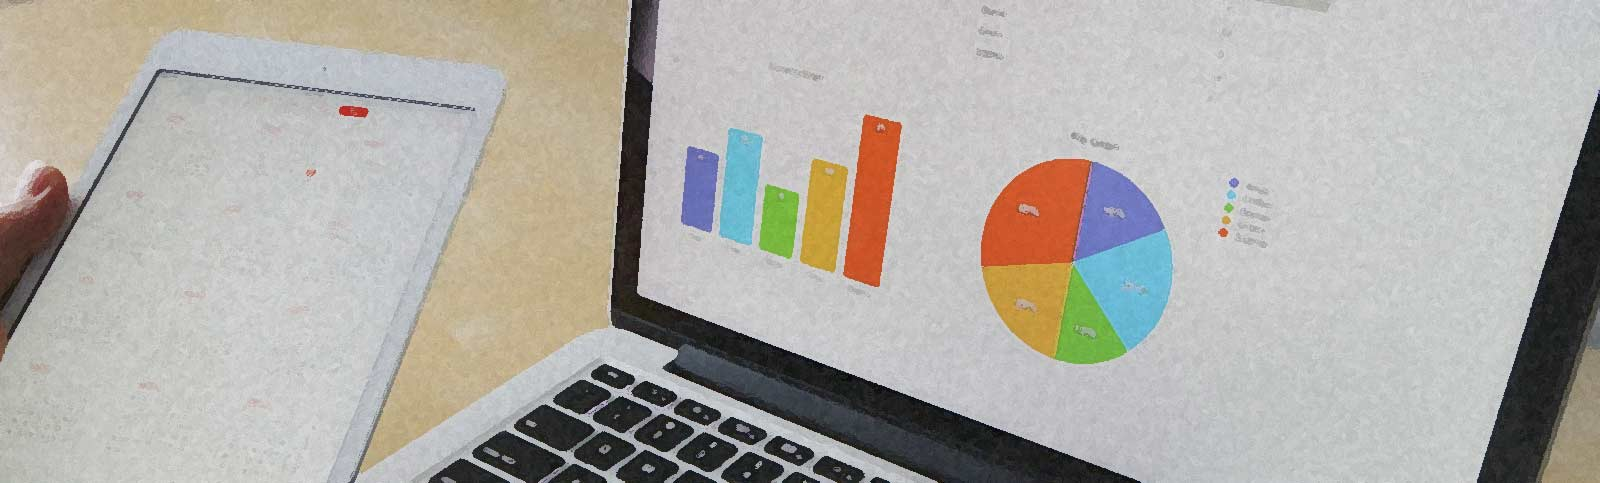 8 Digital Advertising Metrics to Track in 2021